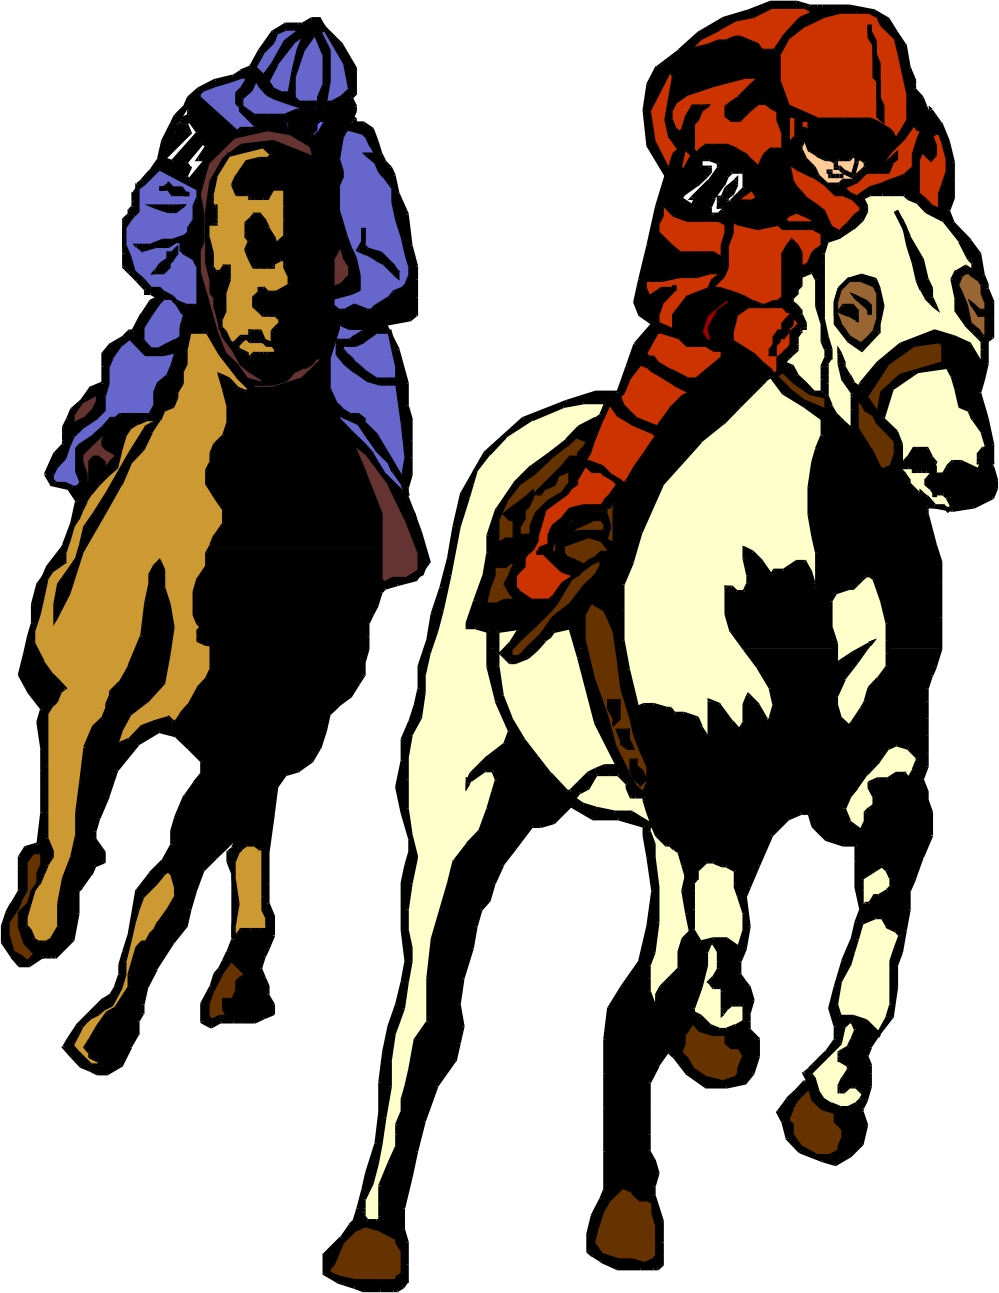 Free Horse Racing Clipart, Download Free Clip Art, Free Clip Art on ... jpg royalty free stock